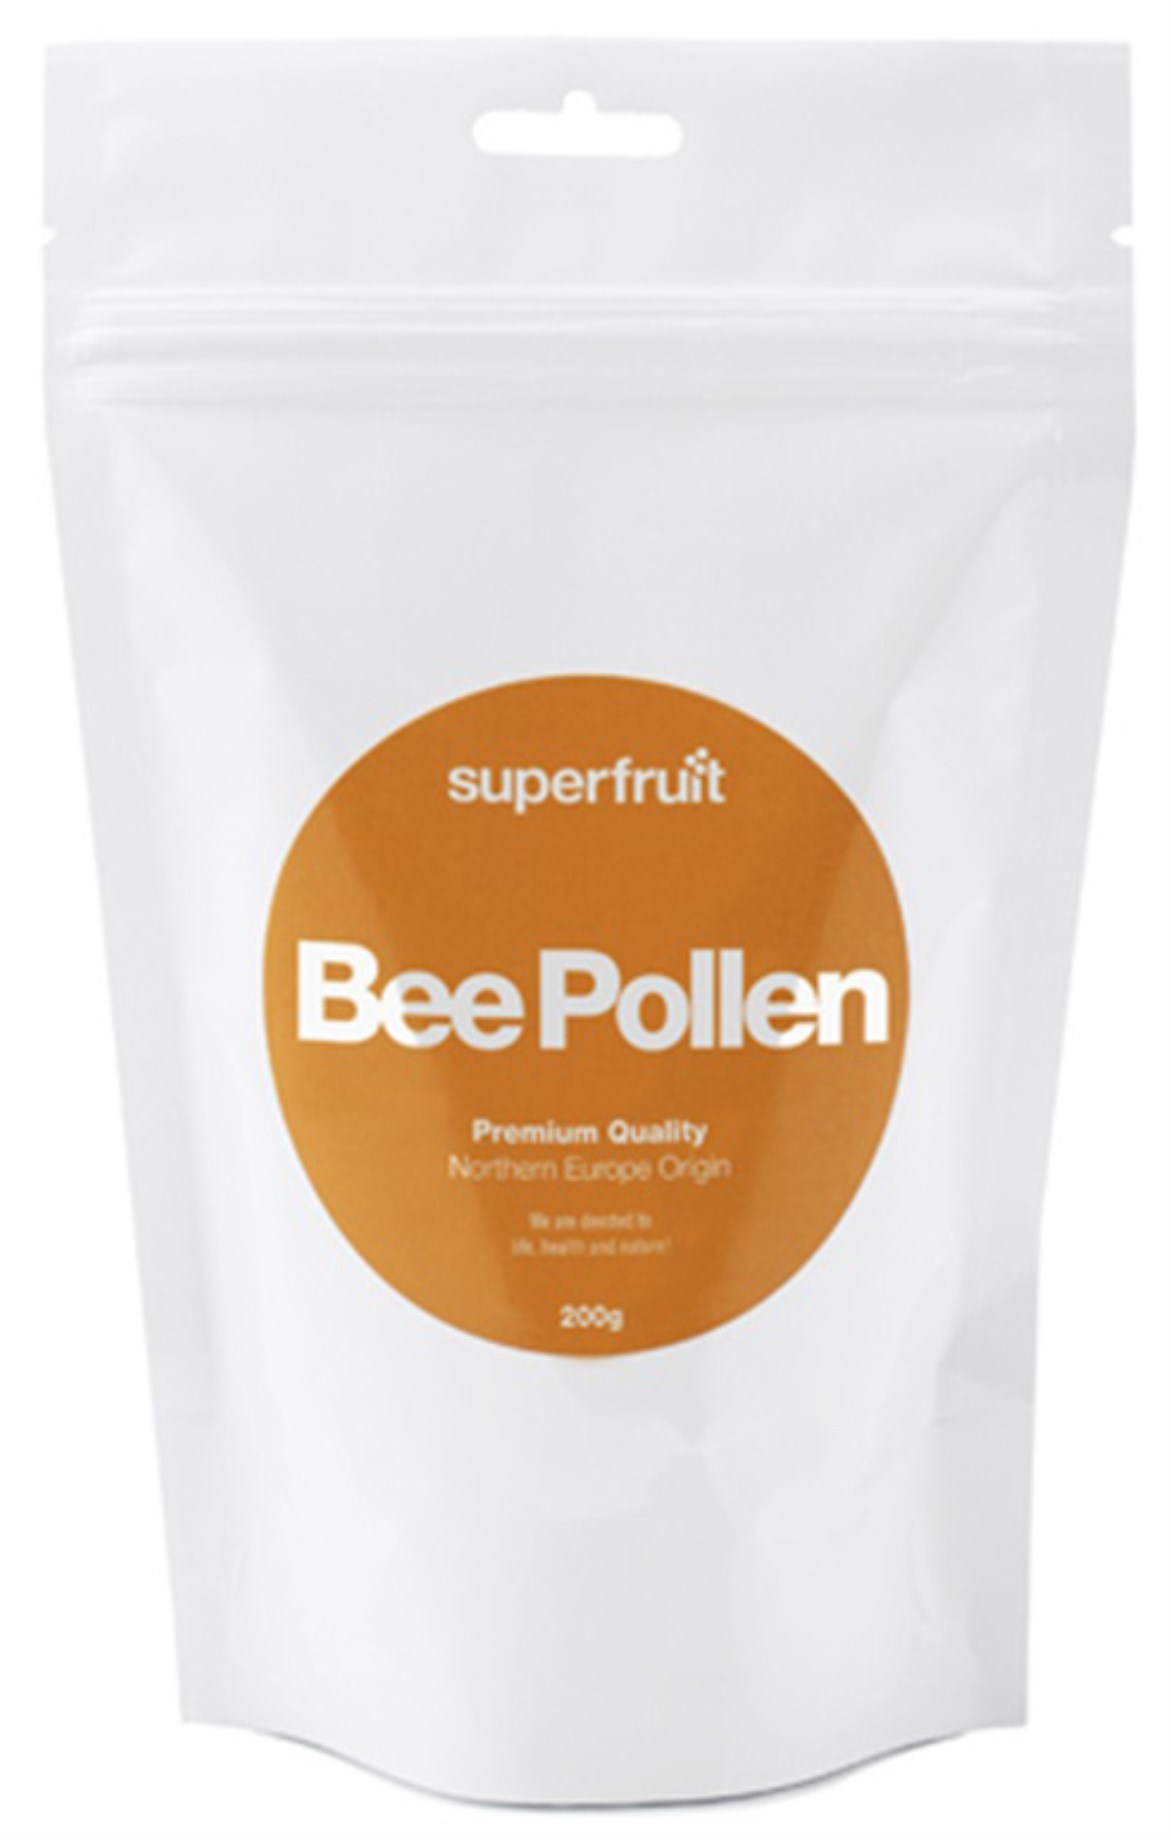 Superfruit Bipollen,  - Superfruit